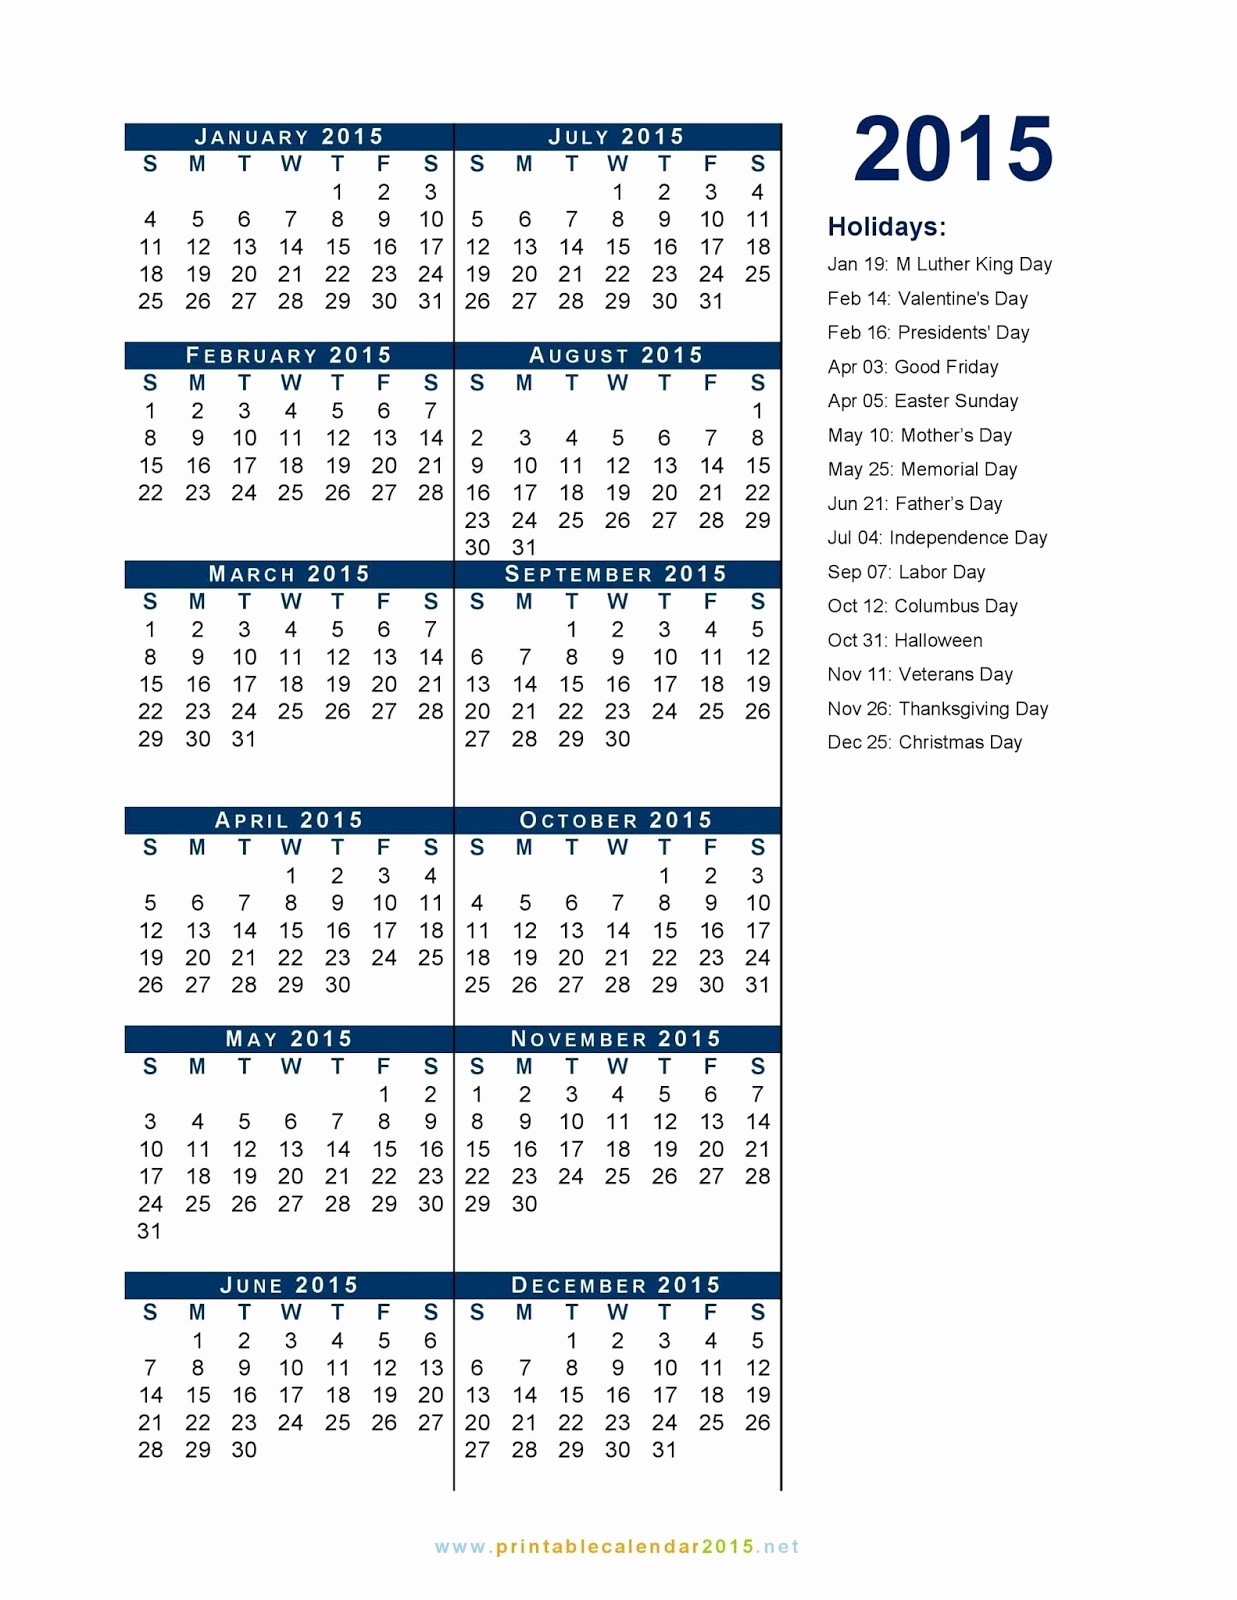 Calendar 2015 Printable with Holidays Unique Iupui Holiday List 2015